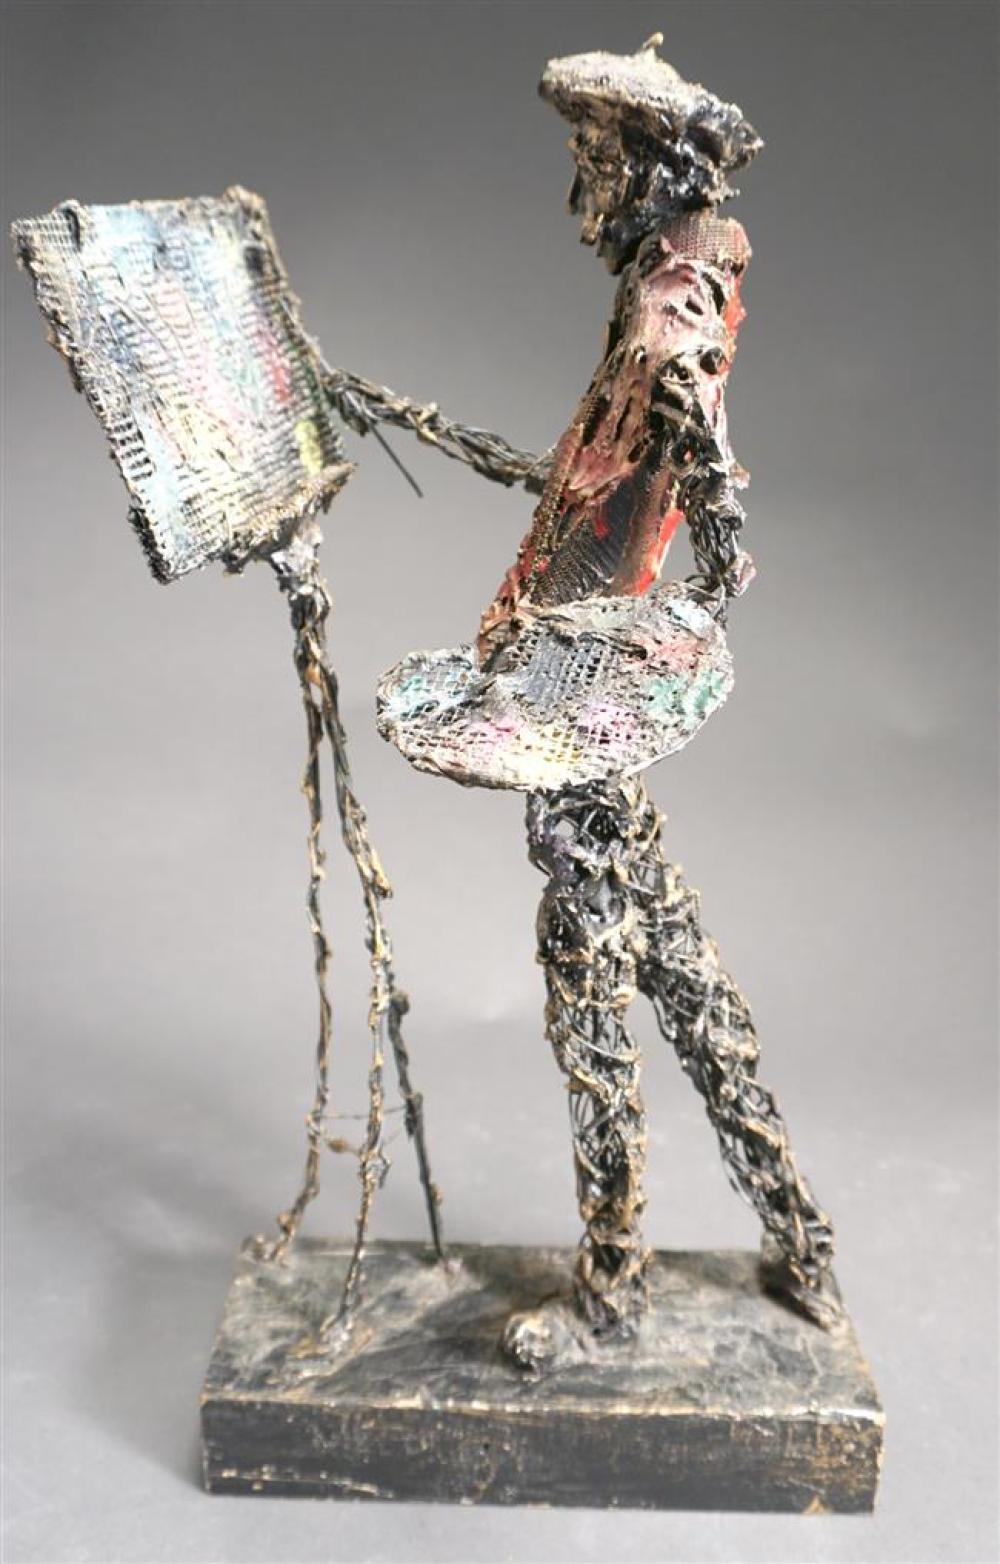 J Pena, Decorated Resin and Wired Metal Sculpture of a Painter; Overall Height 18-1/2 in